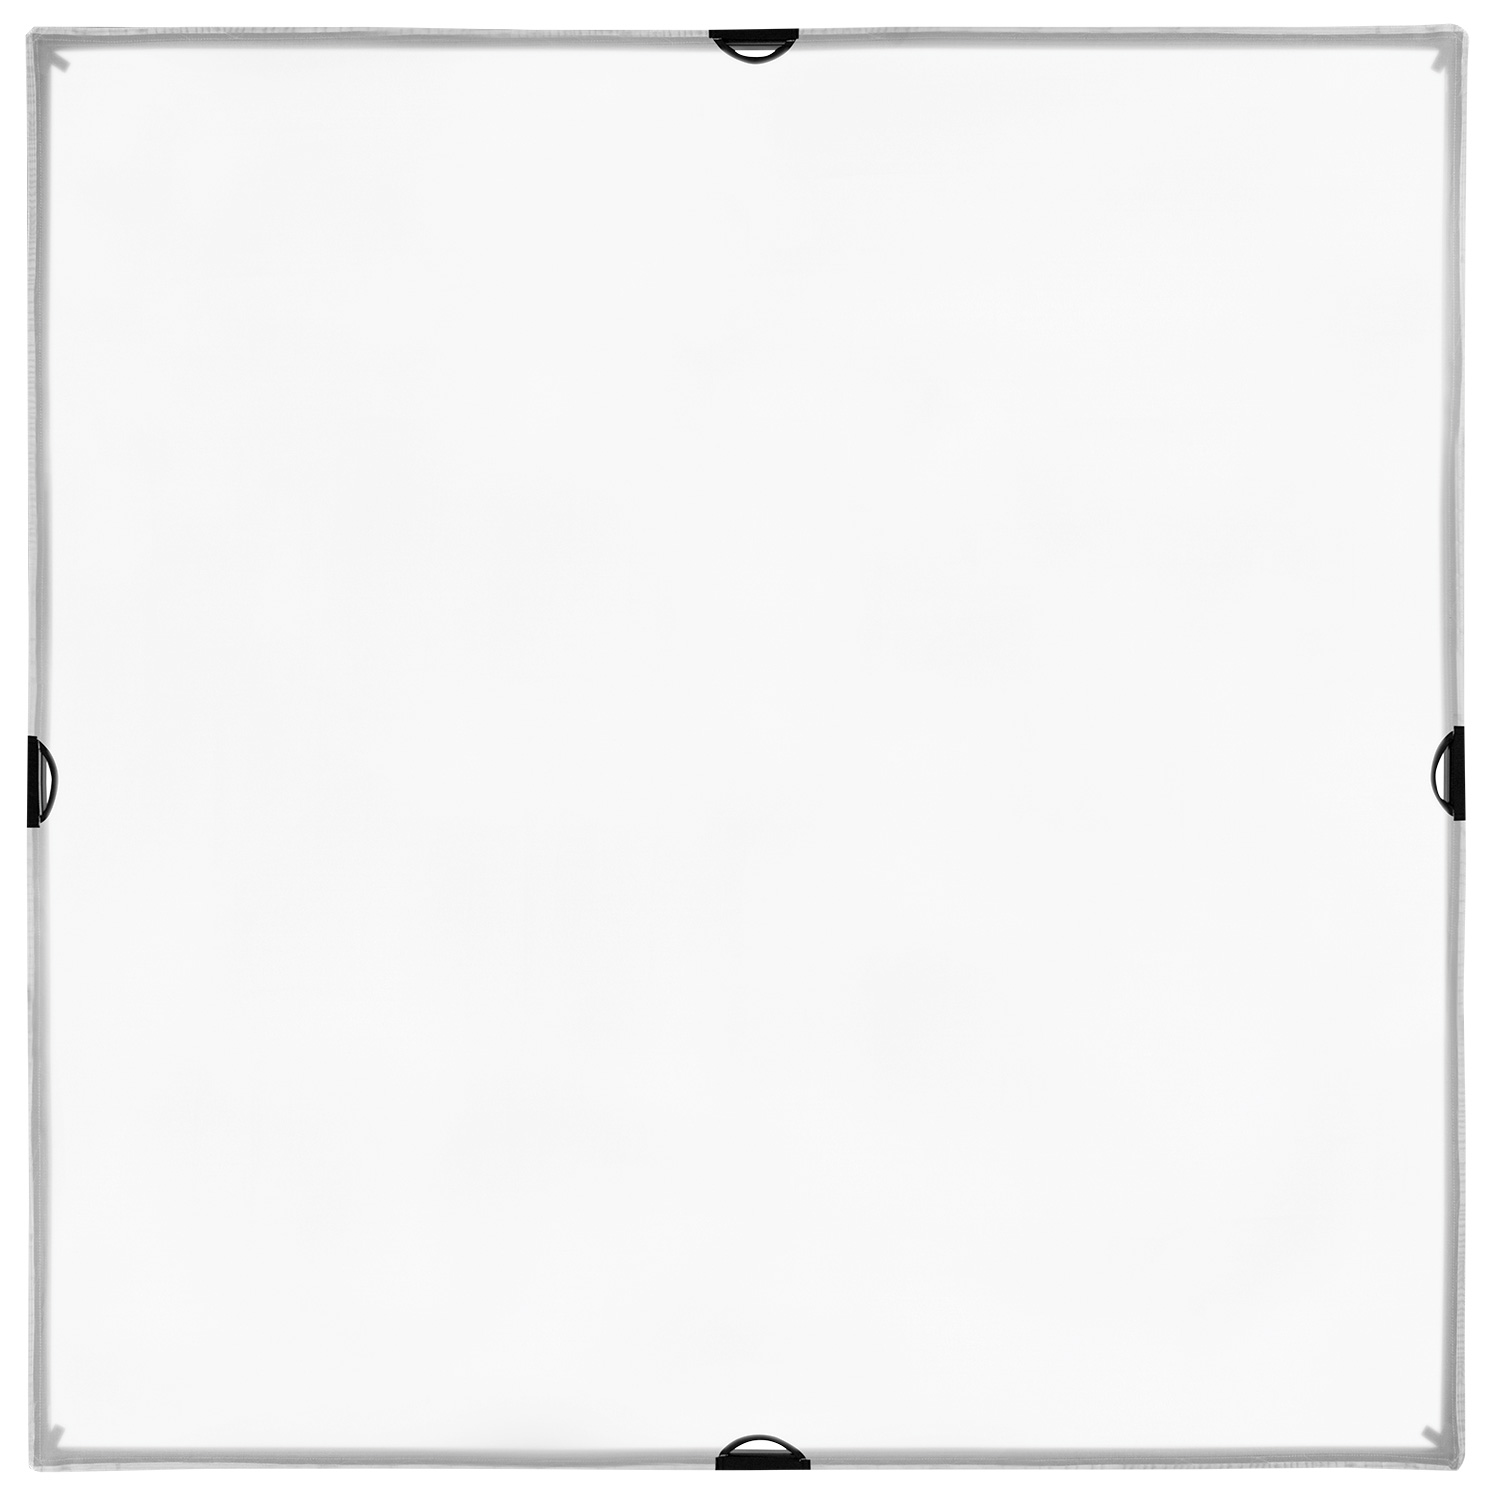 Scrim Jim Large 1-1/4-Stop Diffusion Fabric (71-in. x 71-in.)